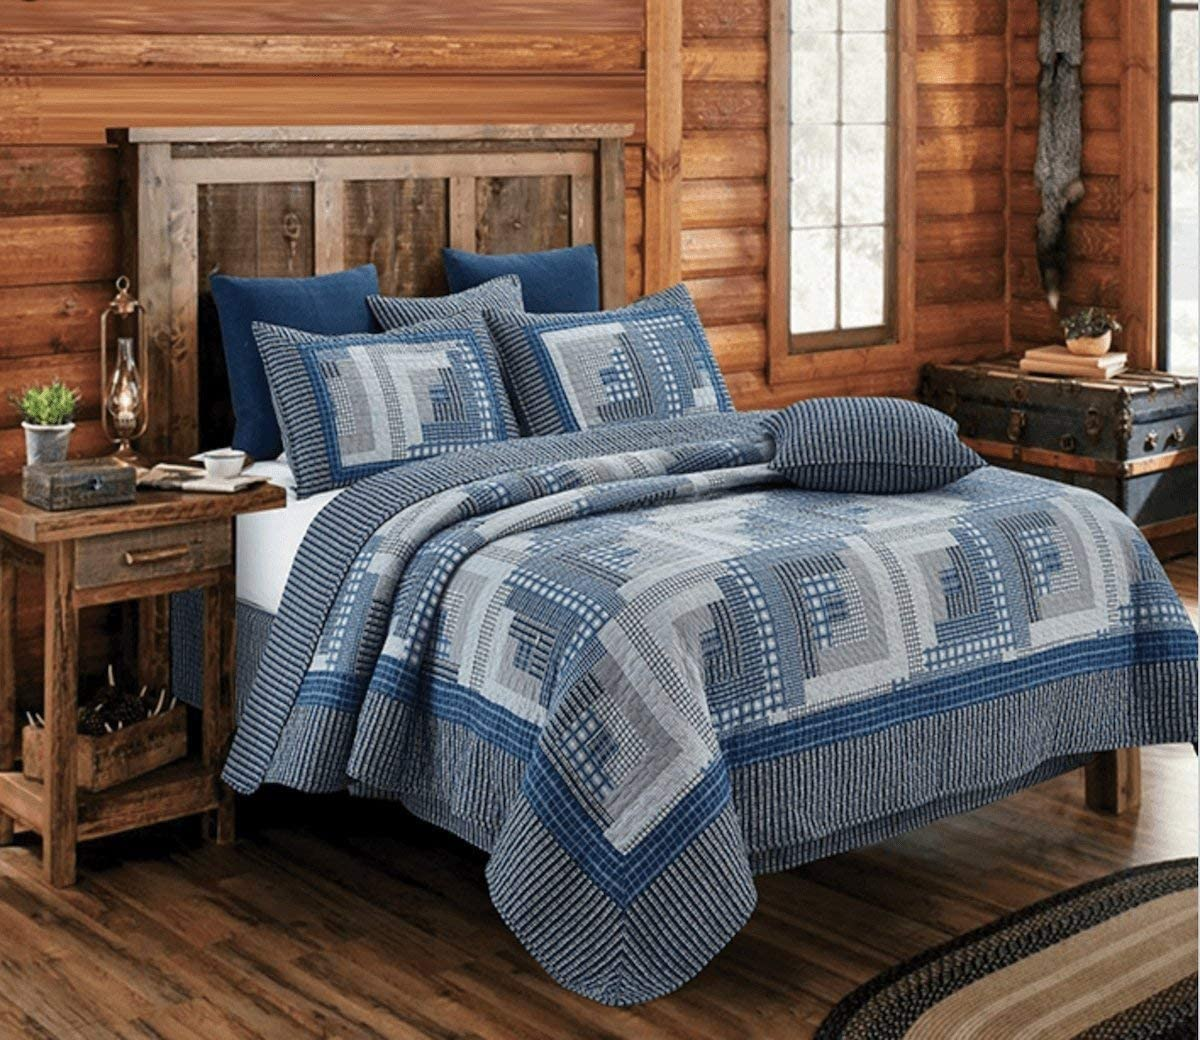 Montana Cabin Blue/Gray Quilt Set Queen